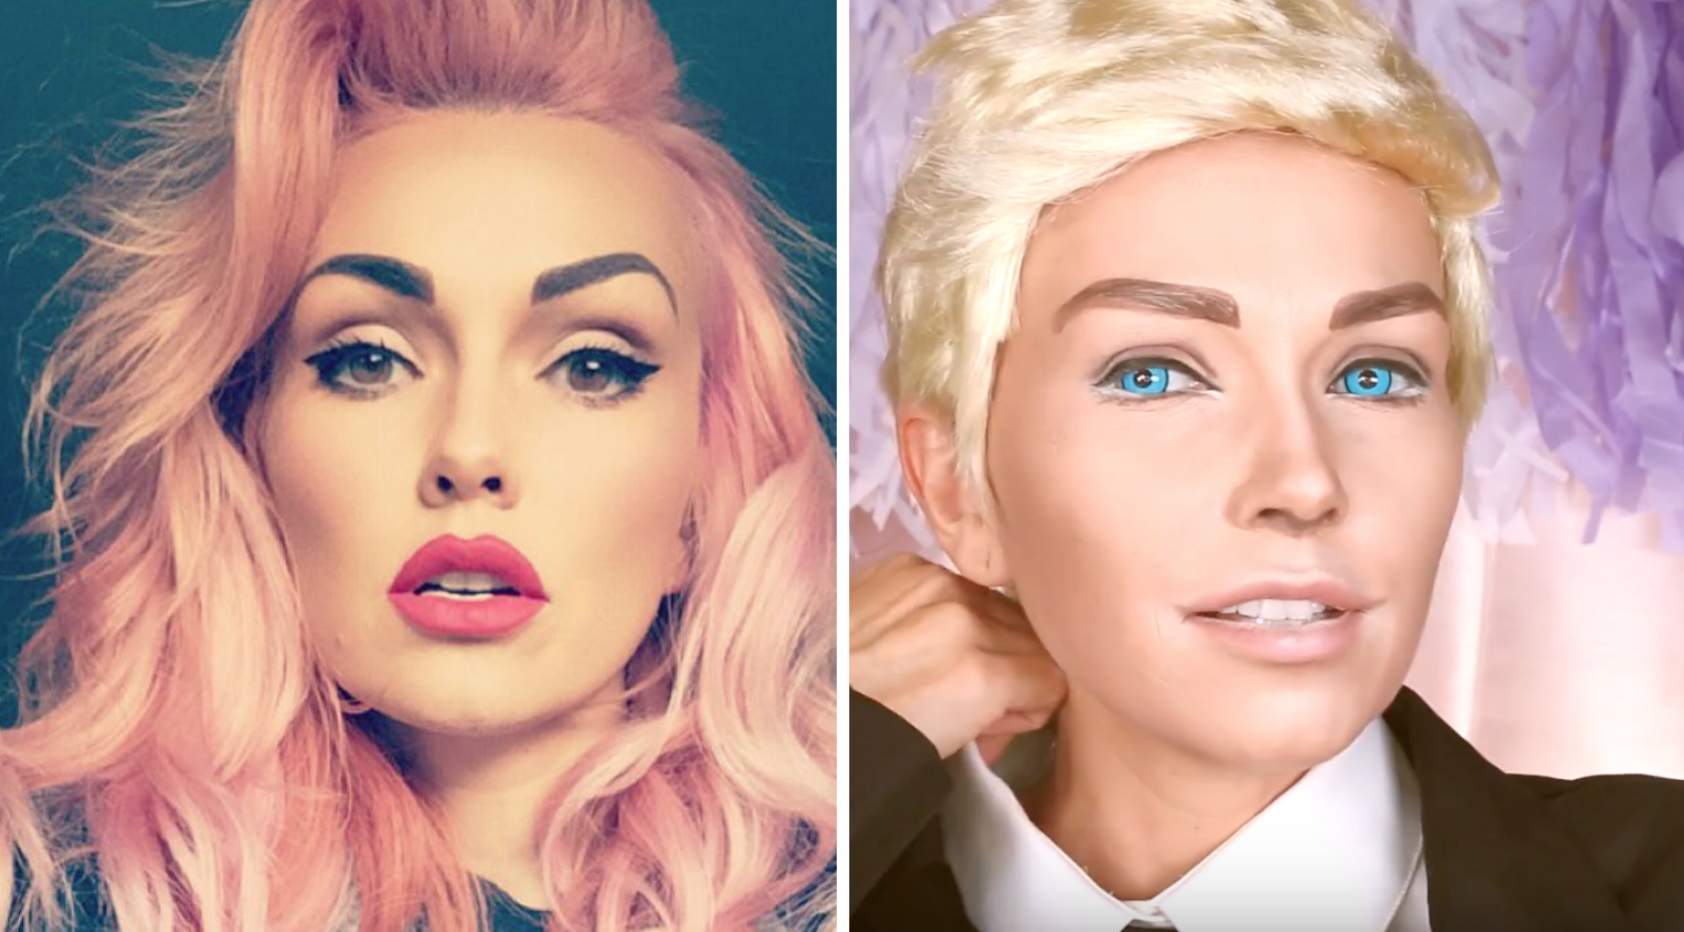 This woman transformed herself into a Ken doll, we're kinda freaked out right now